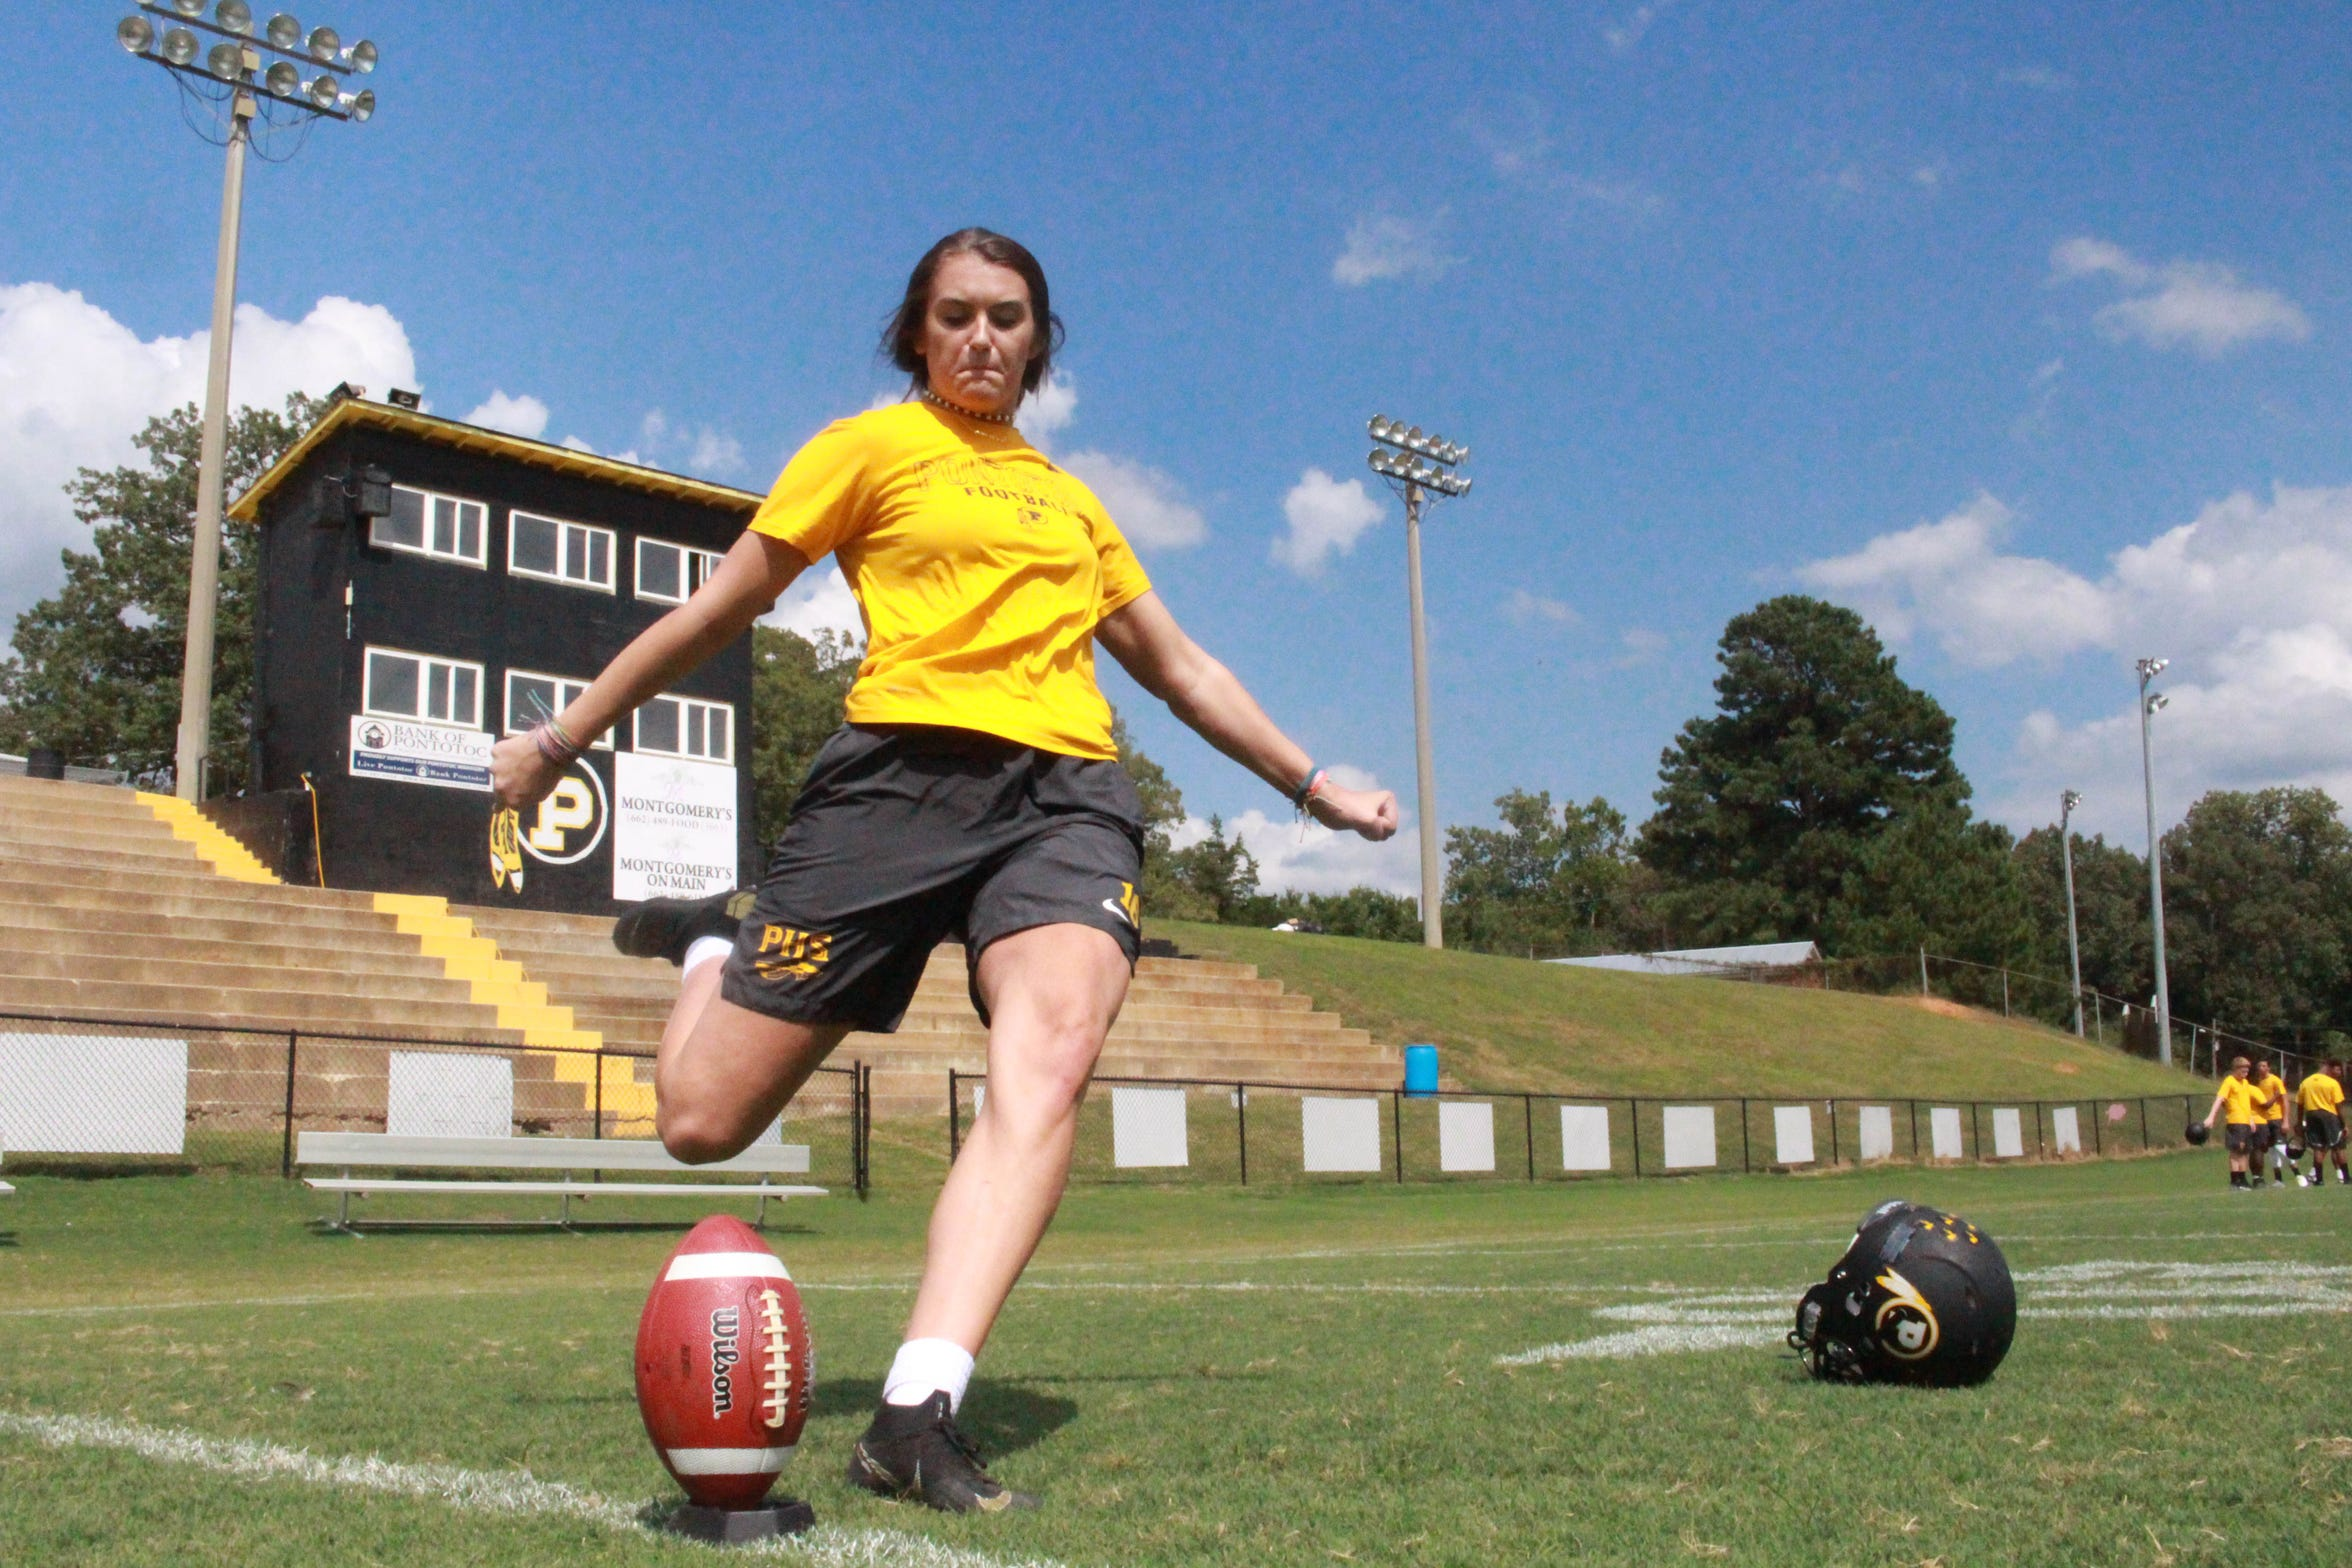 Pontotoc kicker Taylor Hughes practices kickoffs at Pontotoc High School on Aug. 27, 2018.